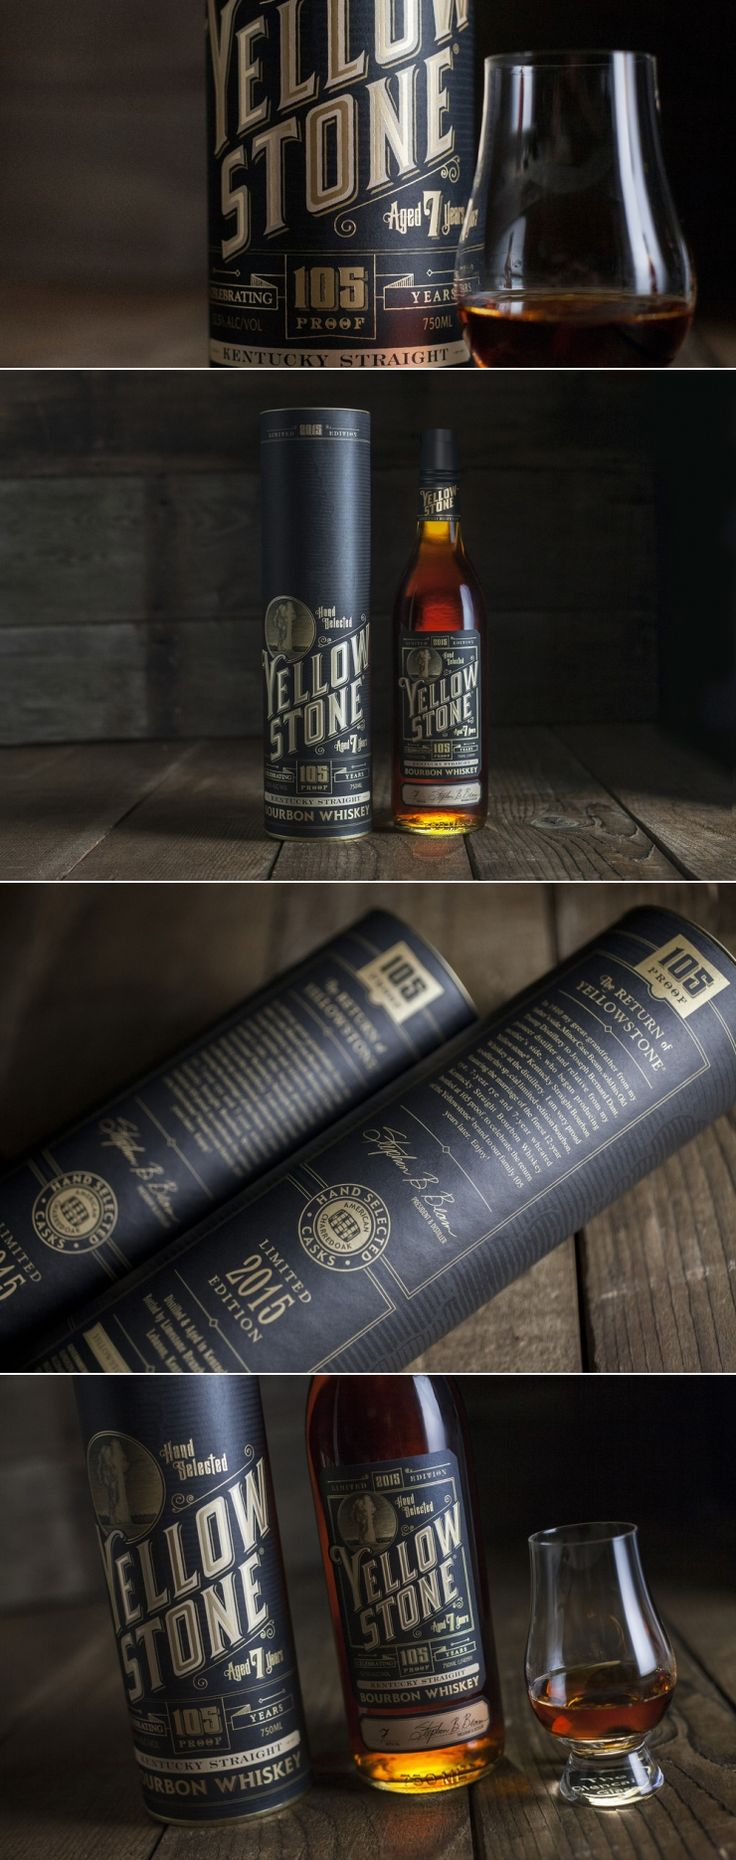 2015 Yellowstone Limited Edition Bourbon Whiskey — The Dieline - Branding & Packaging Design